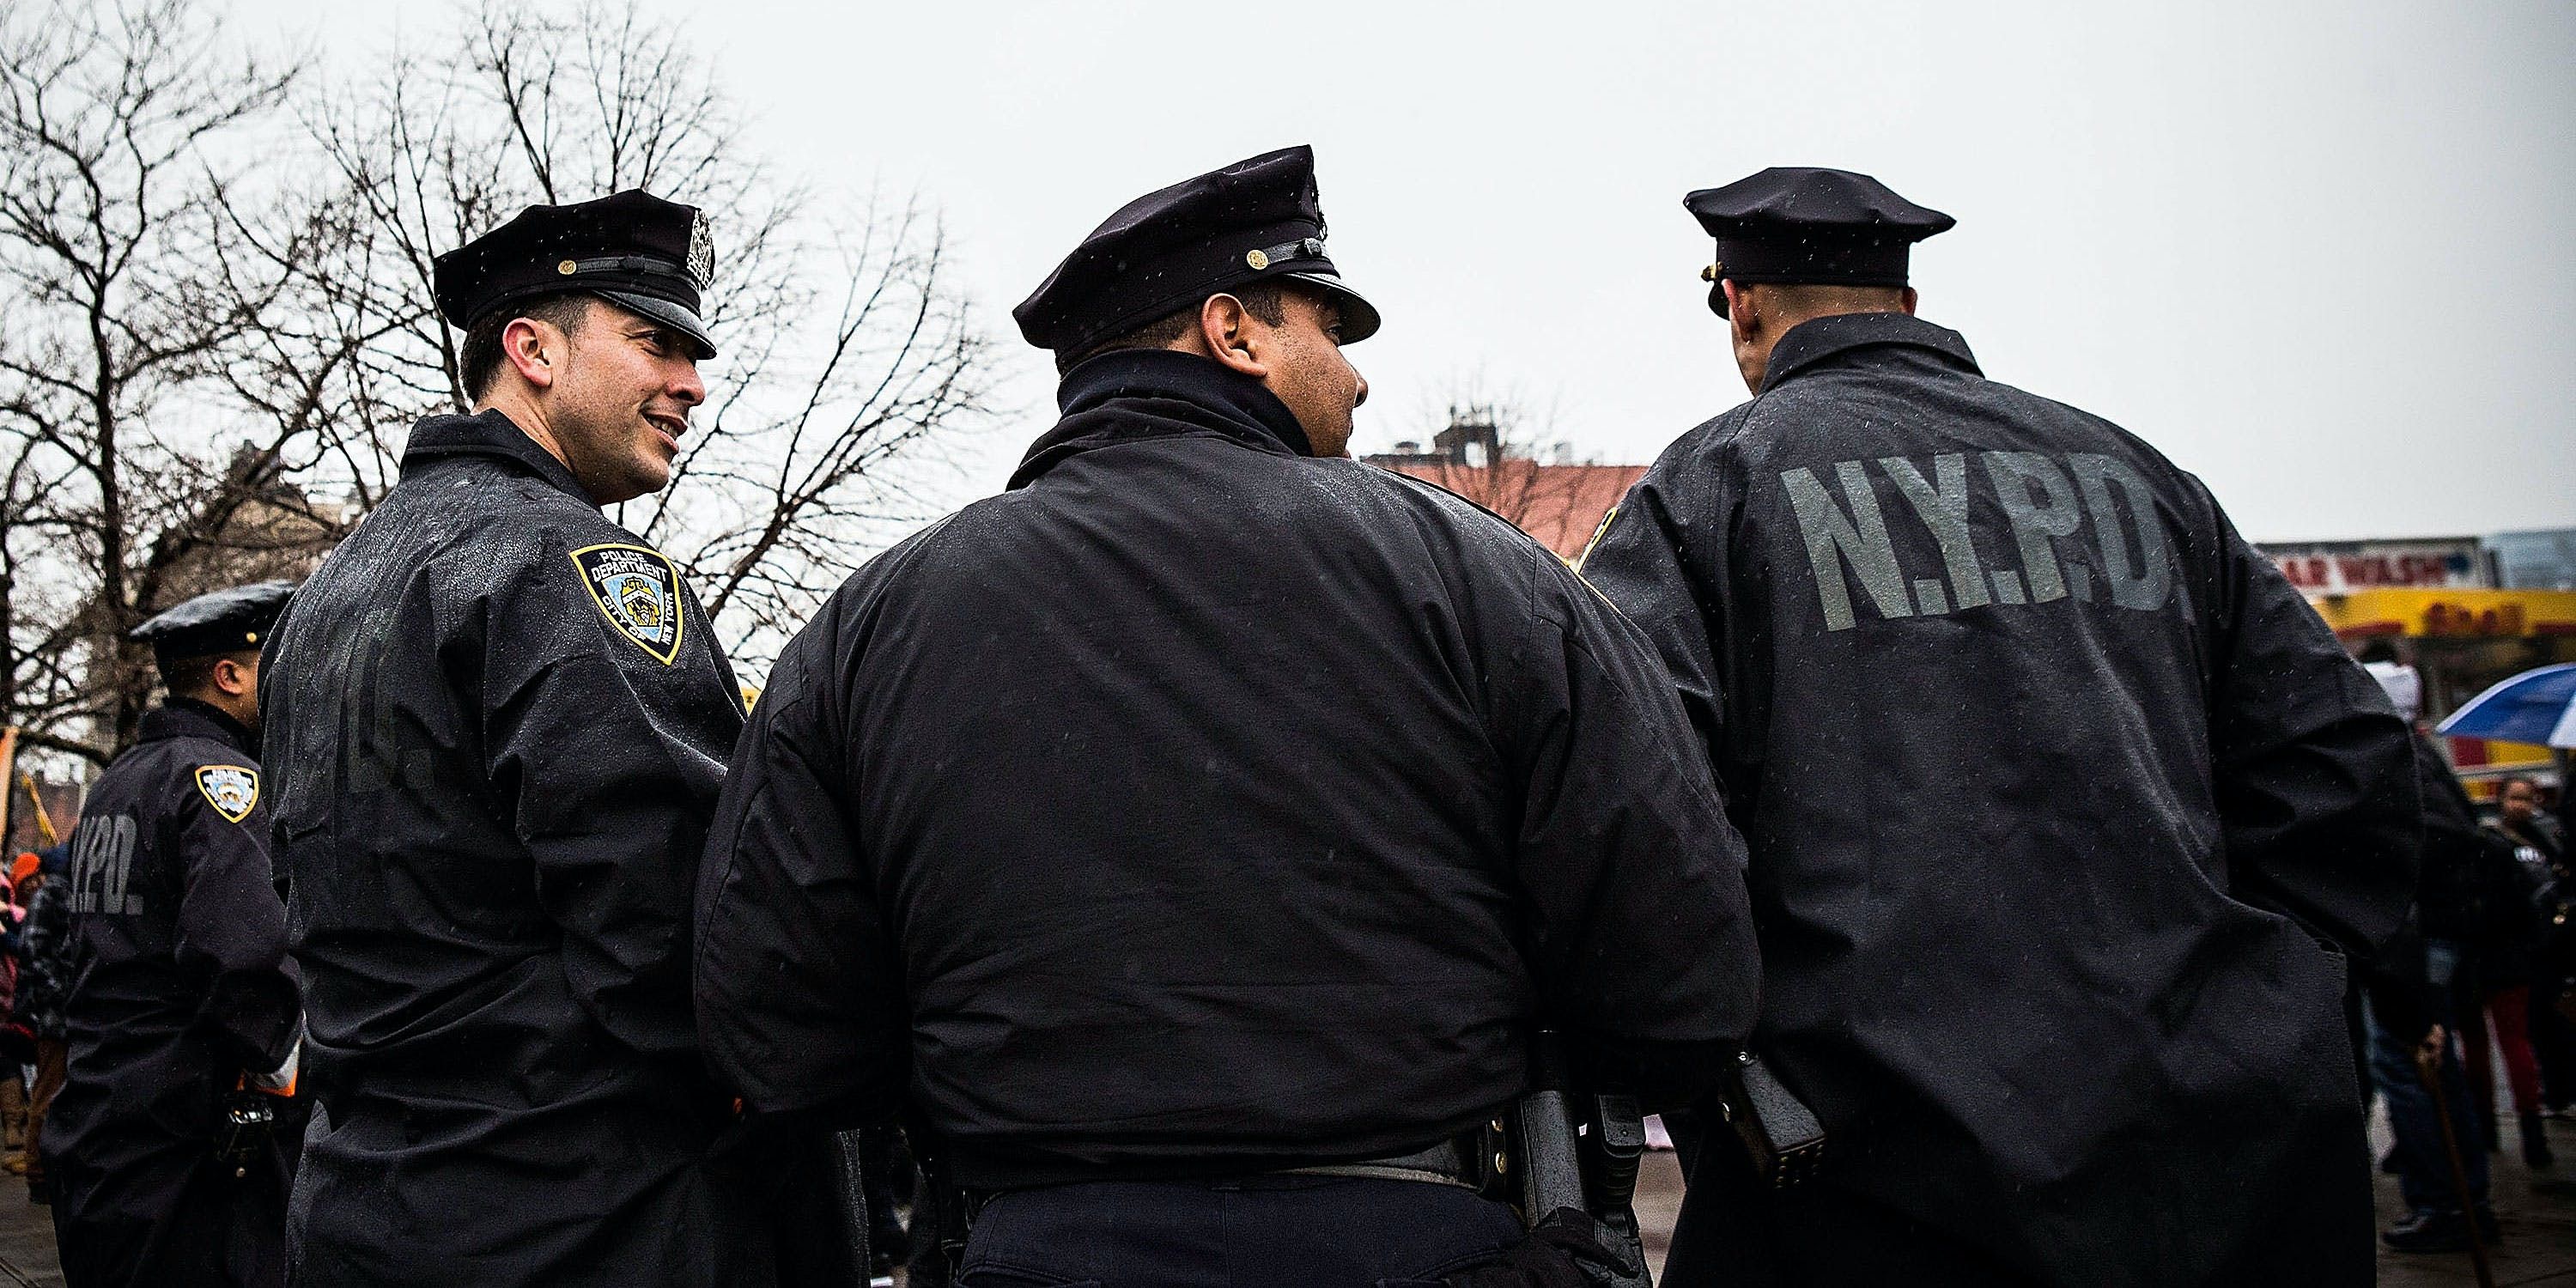 NYPD officers monitor a march against stop-and-frisk tactics used by police on February 23, 2013 in New York City. The march, which consisted of a few hundred people, started in the Bronx borough of New York and marched into the Harlem neighborhood of Manhattan. (Photo by Andrew Burton/Getty Images)